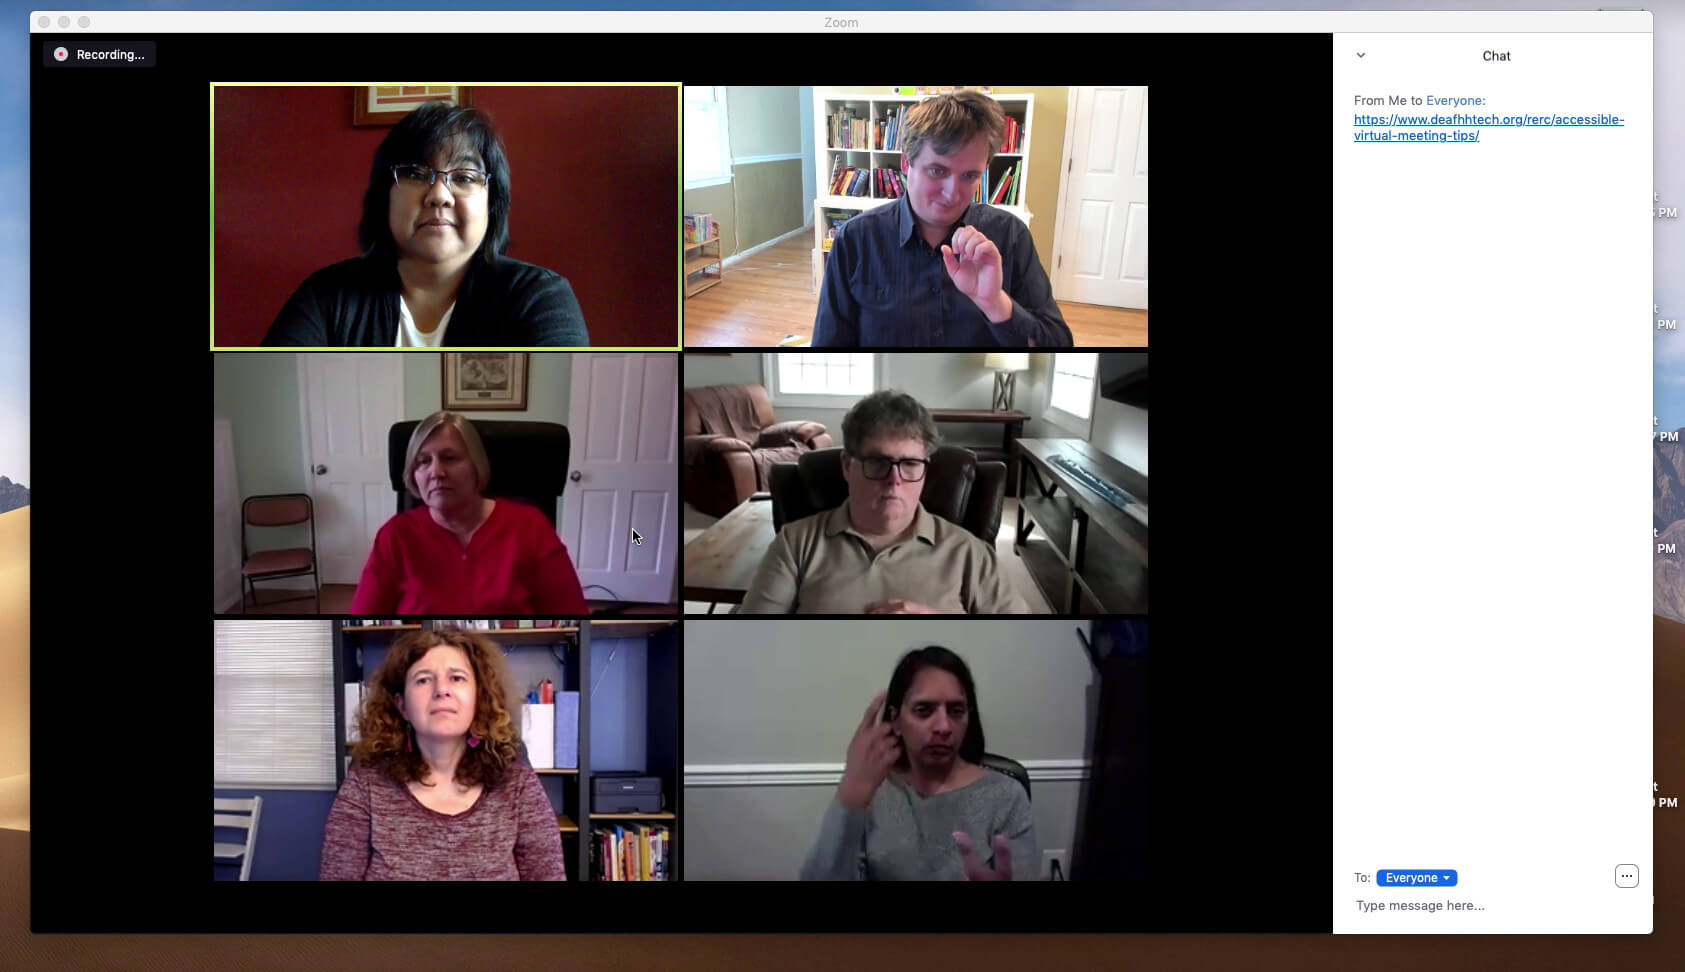 Video conference with six participants; four women and two men. Two of the participants are signing, while the others are watching. A chat pane shows a web URL under discussion.